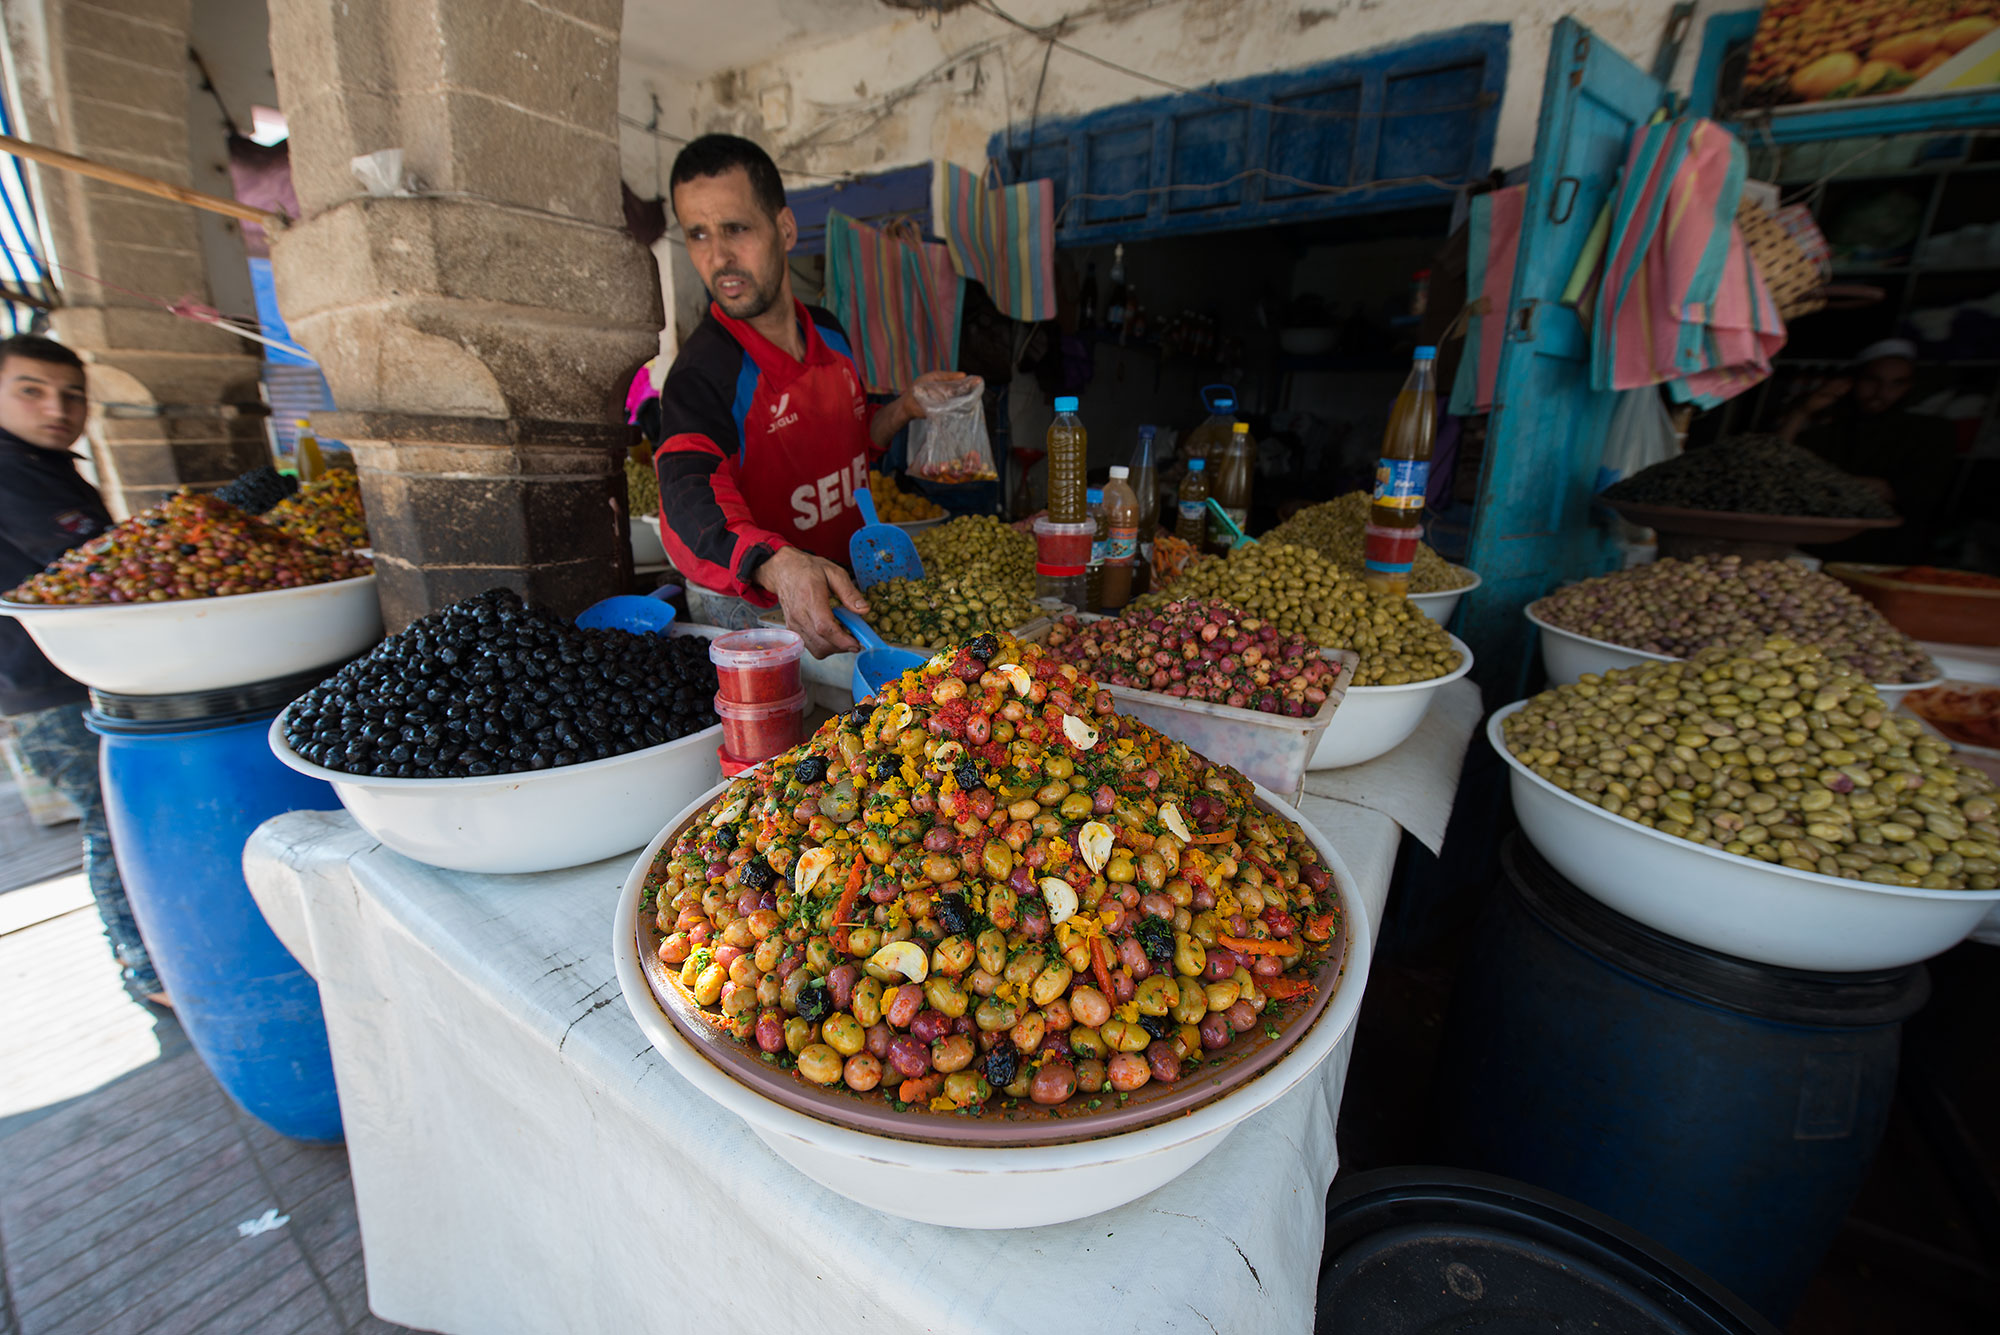 Olive sale in the Market Morocco